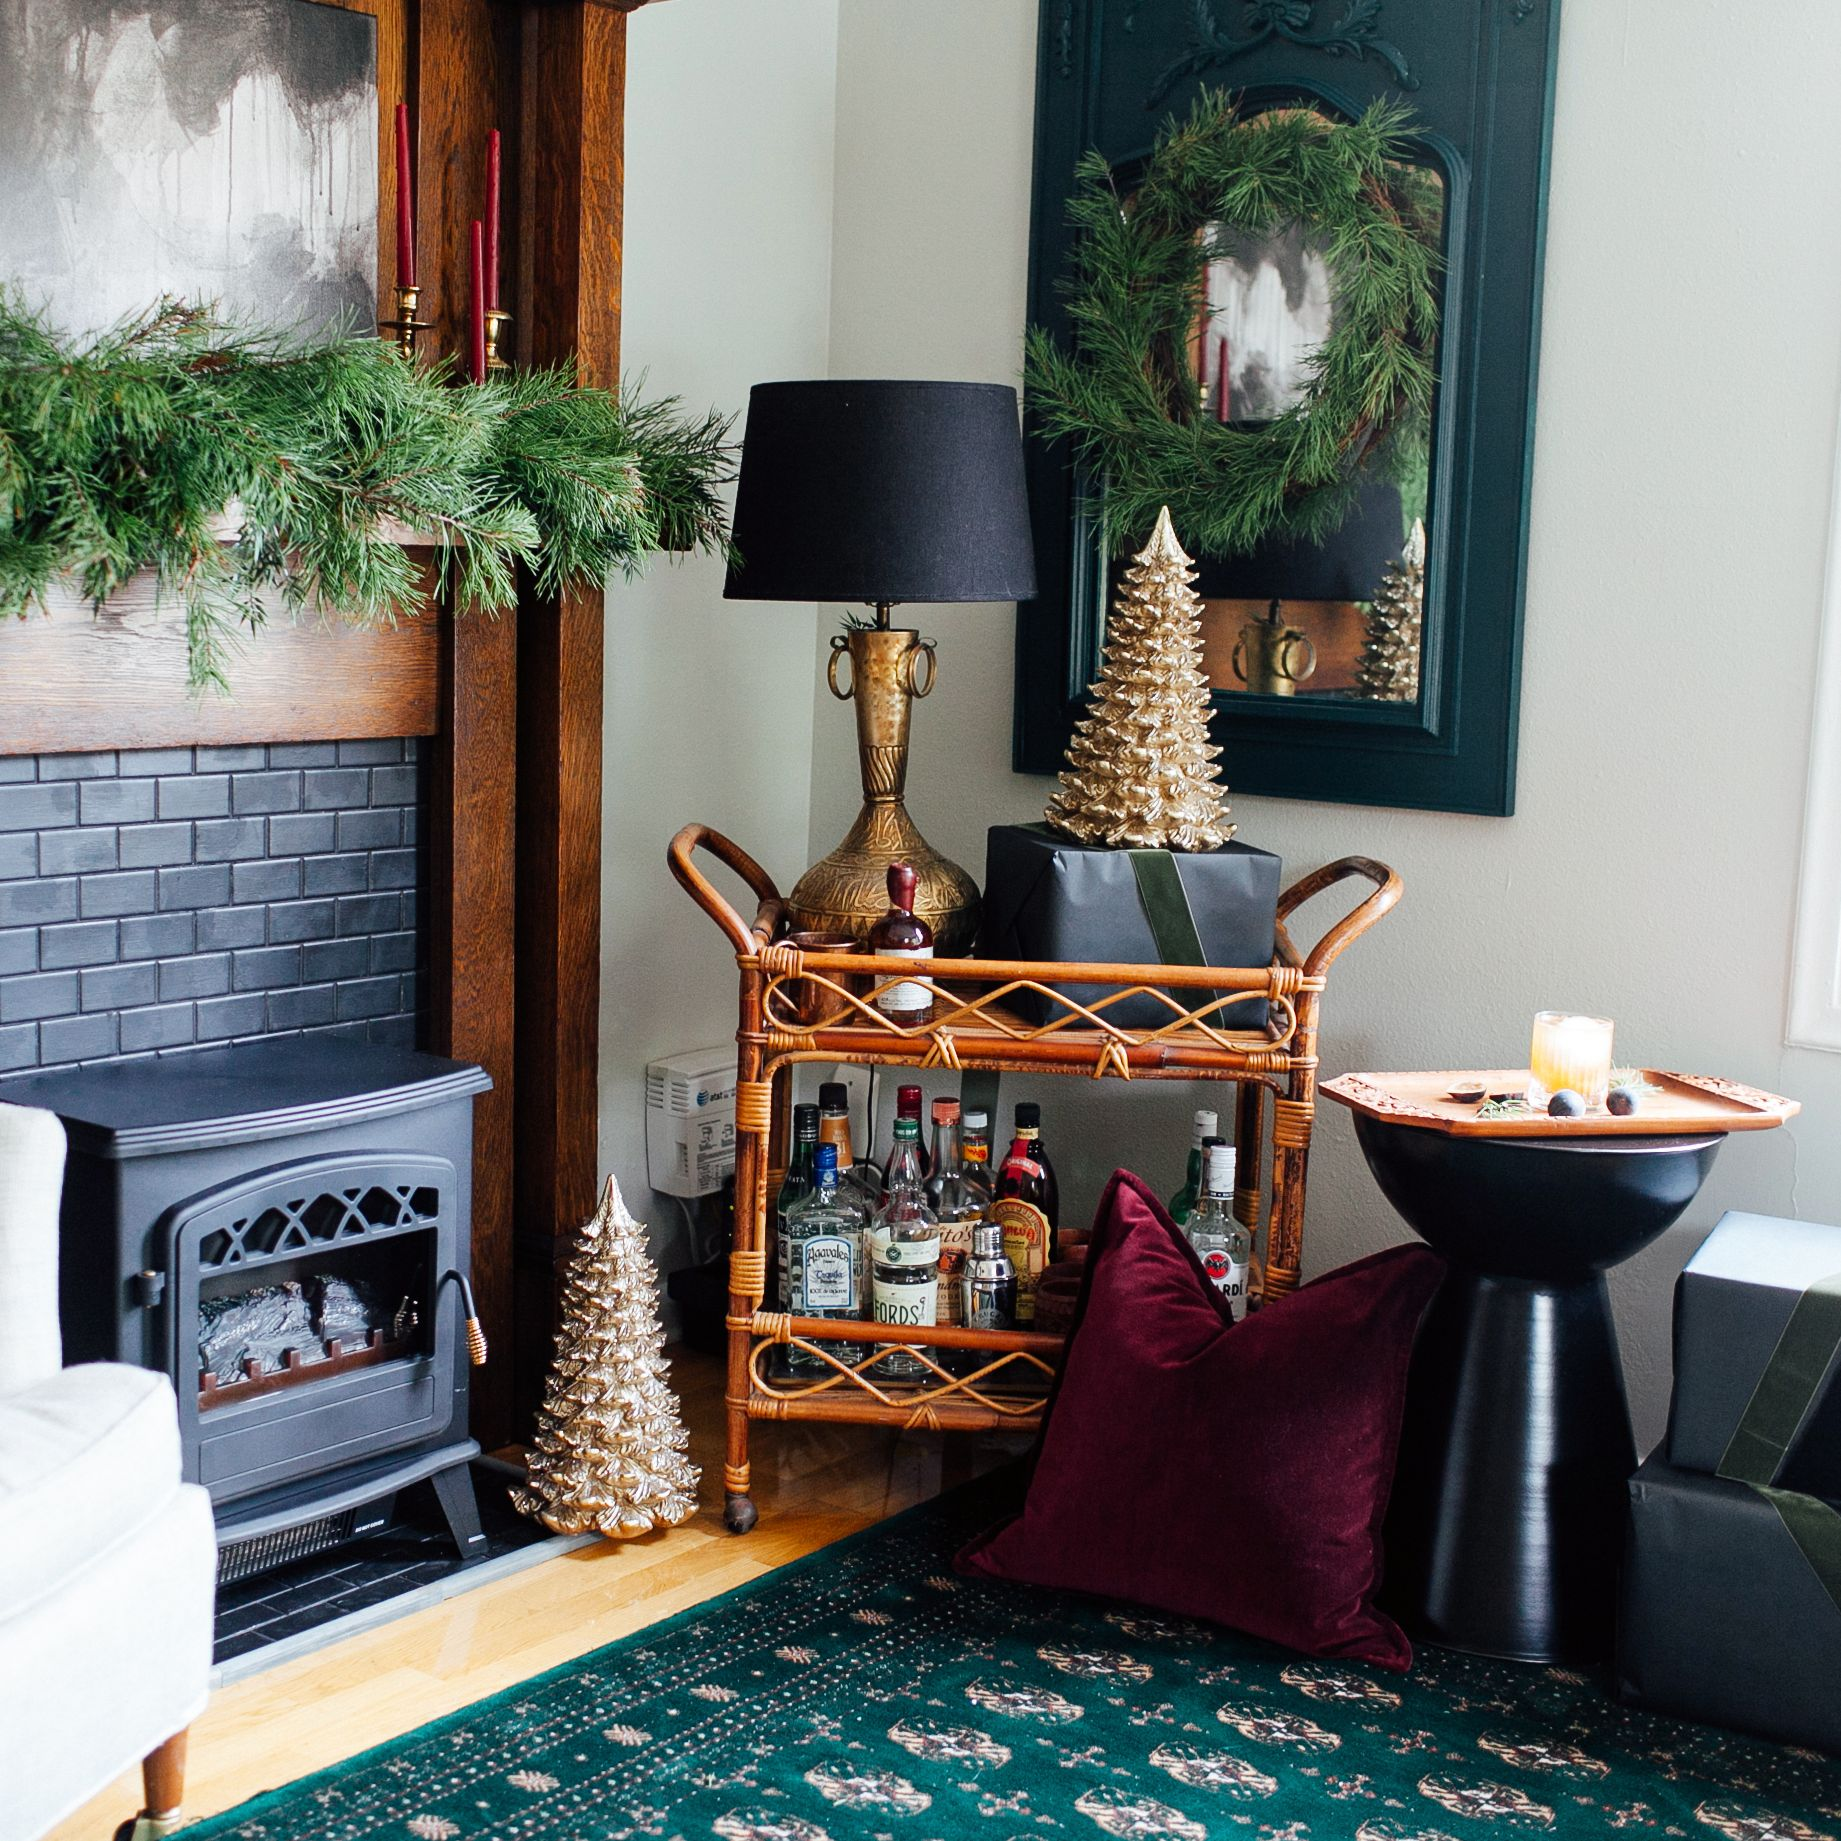 "<p>Claire Brody of <a href=""http://clairebrodydesigns.com/"">Claire Brody Designs</a> created a festive and cozy space around her <a href=""http://www.homedepot.com/p/Warm-House-Ottawa-20-in-Retro-Style-Floor-Standing-Electric-Fireplace-ORF-10340/205386656&#x3B;jsessionid=D994DF53768E193976E6E2D2CE79D18A"">retro inspired floor-standing fireplace</a>. The <a href=""http://www.homedepot.com/p/Martha-Stewart-16-in-Winter-s-Wonder-Gold-Glitter-Christmas-Tree-KX1063-G/205930726"">gold metallic Christmas trees</a> create a holiday splash and contrast well against the rich and moody colors in the room.  </p>"